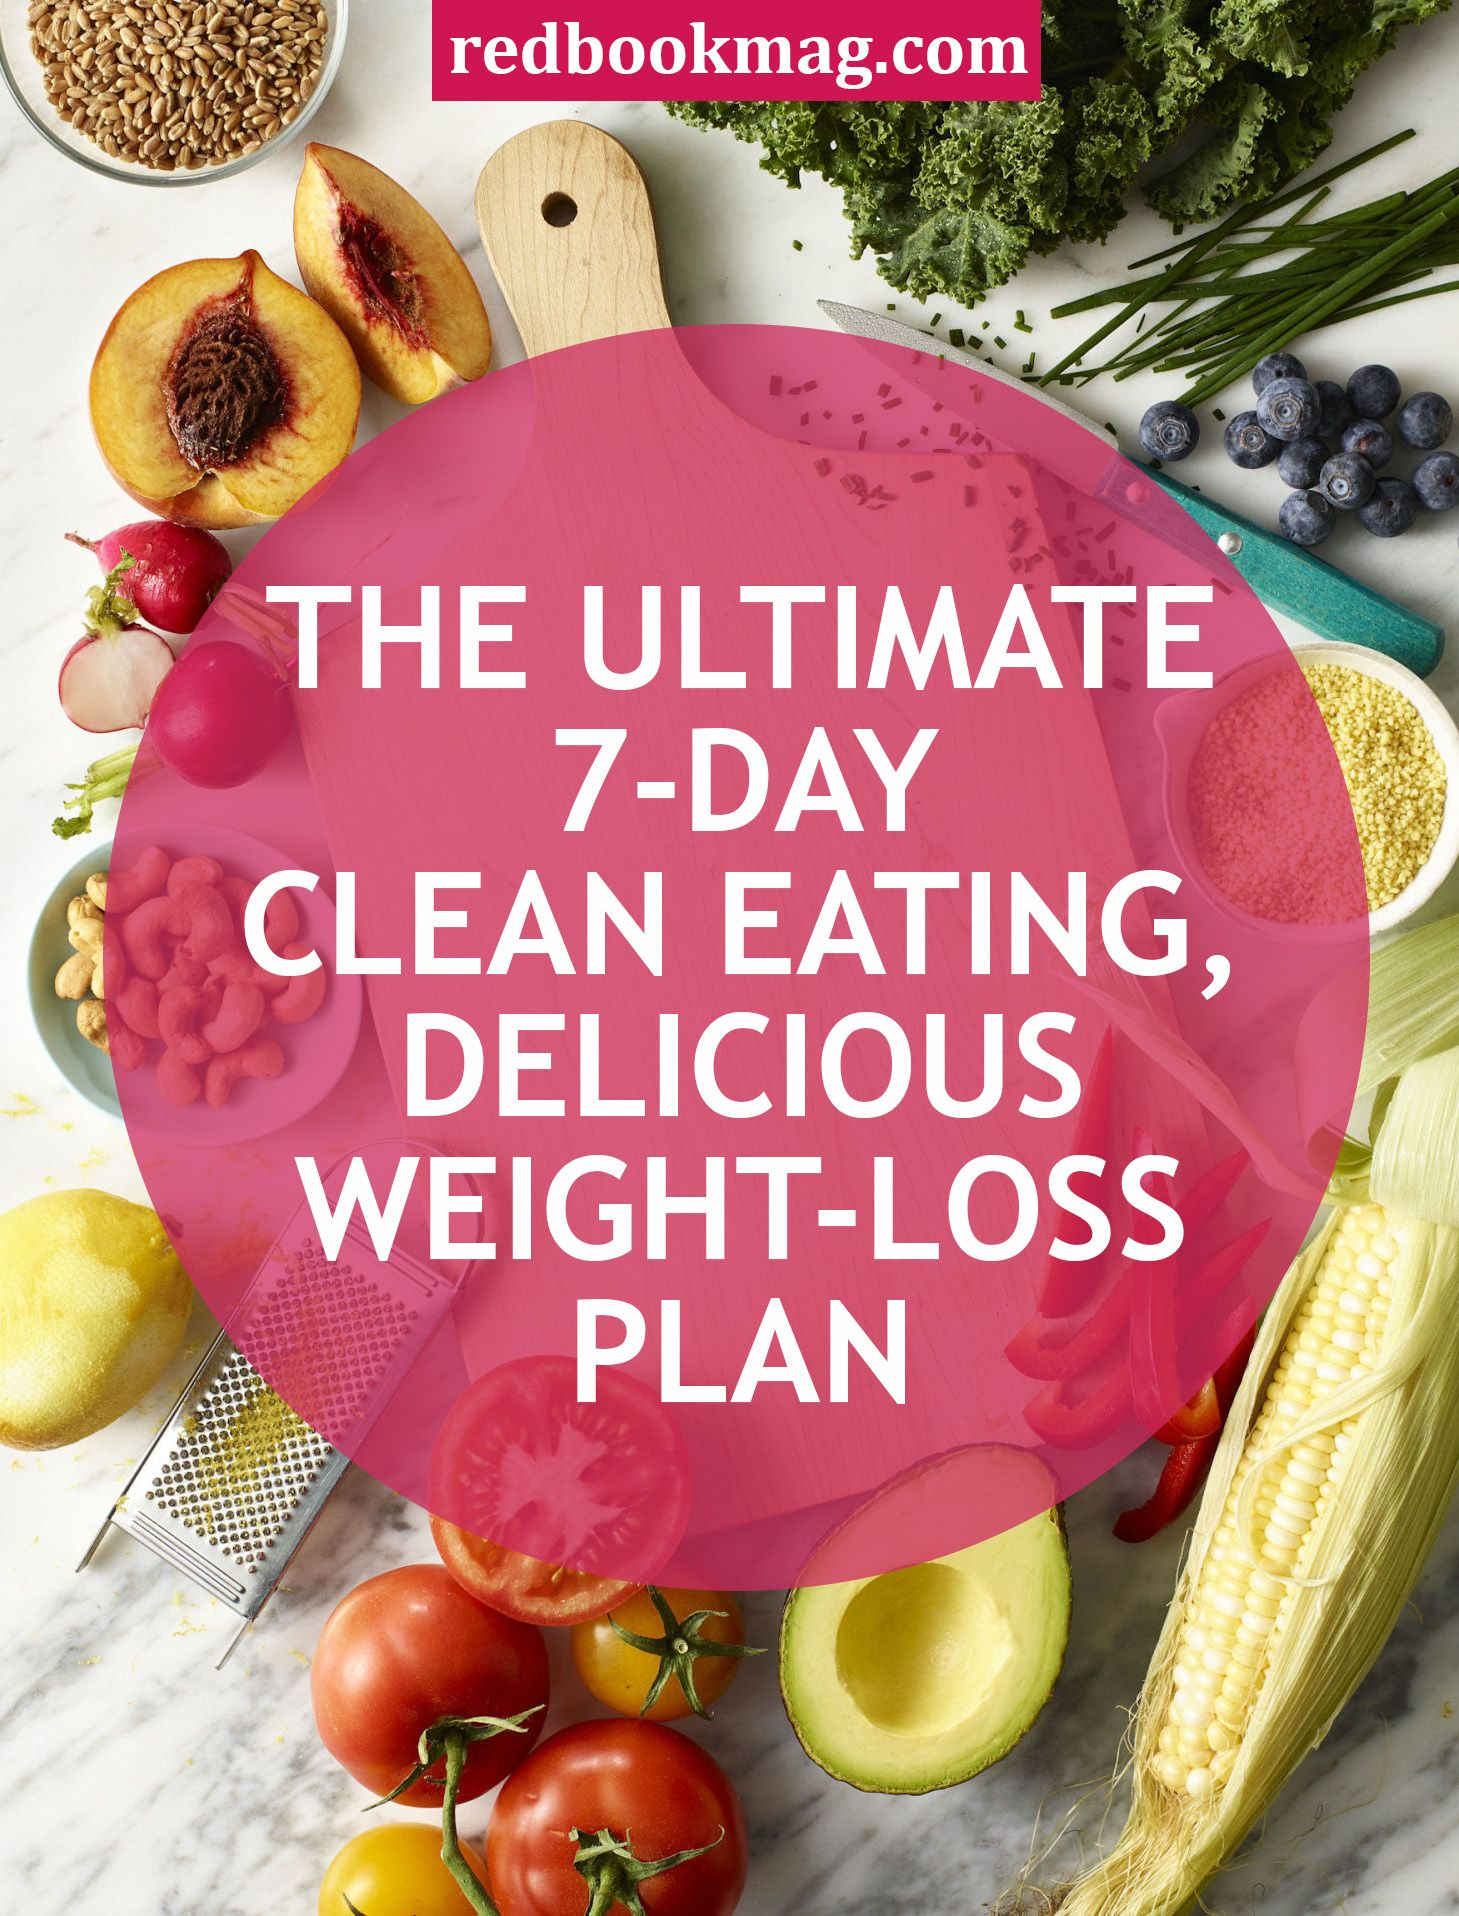 Save this article for later by pinning this image and follow Redbook on Pinterest for more ideas.   - Redbook.com